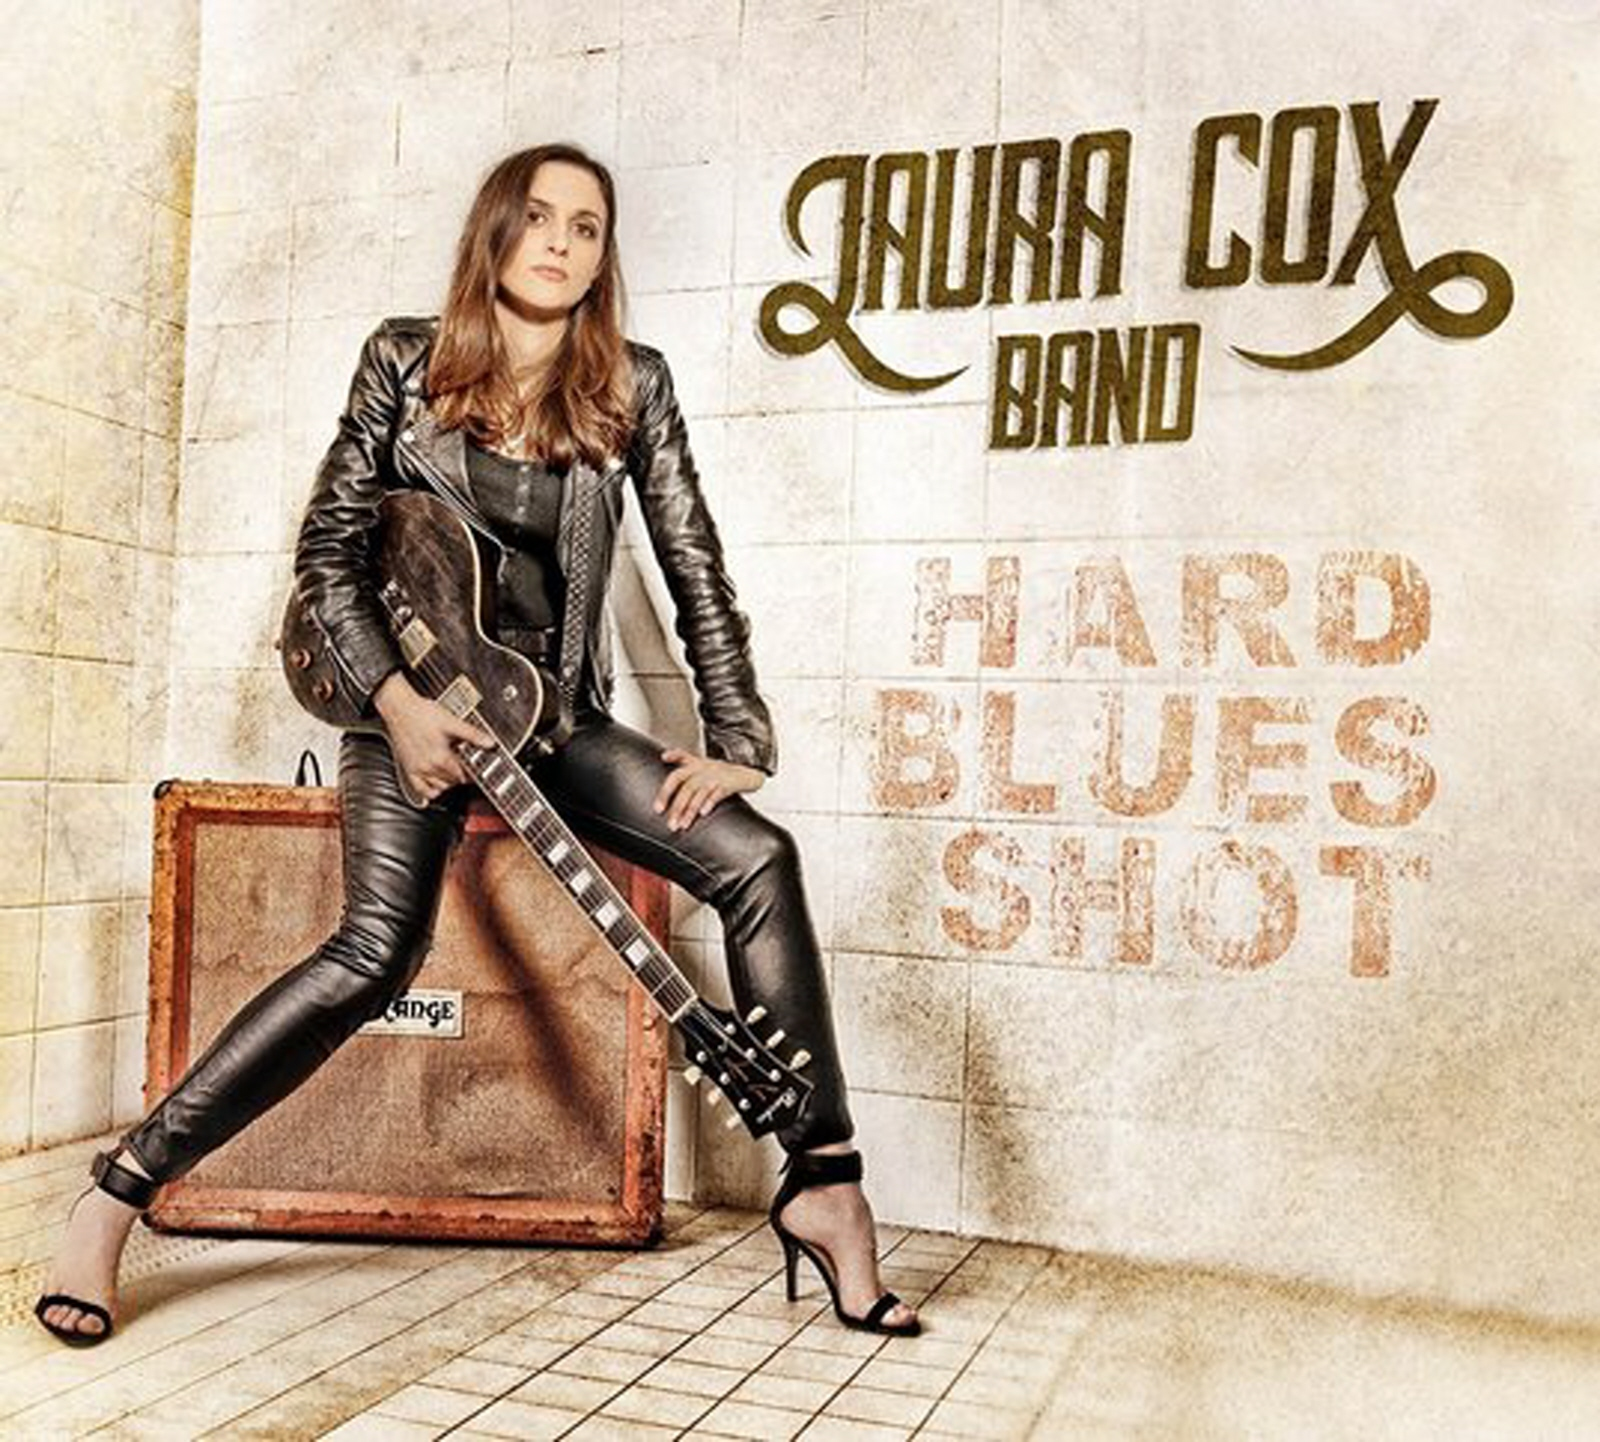 https://i0.wp.com/madelonne.be/wp-content/uploads/2018/03/the-laura-cox-band-blues-rock-guest_1-1515858586.jpg?fit=1600%2C1442&ssl=1